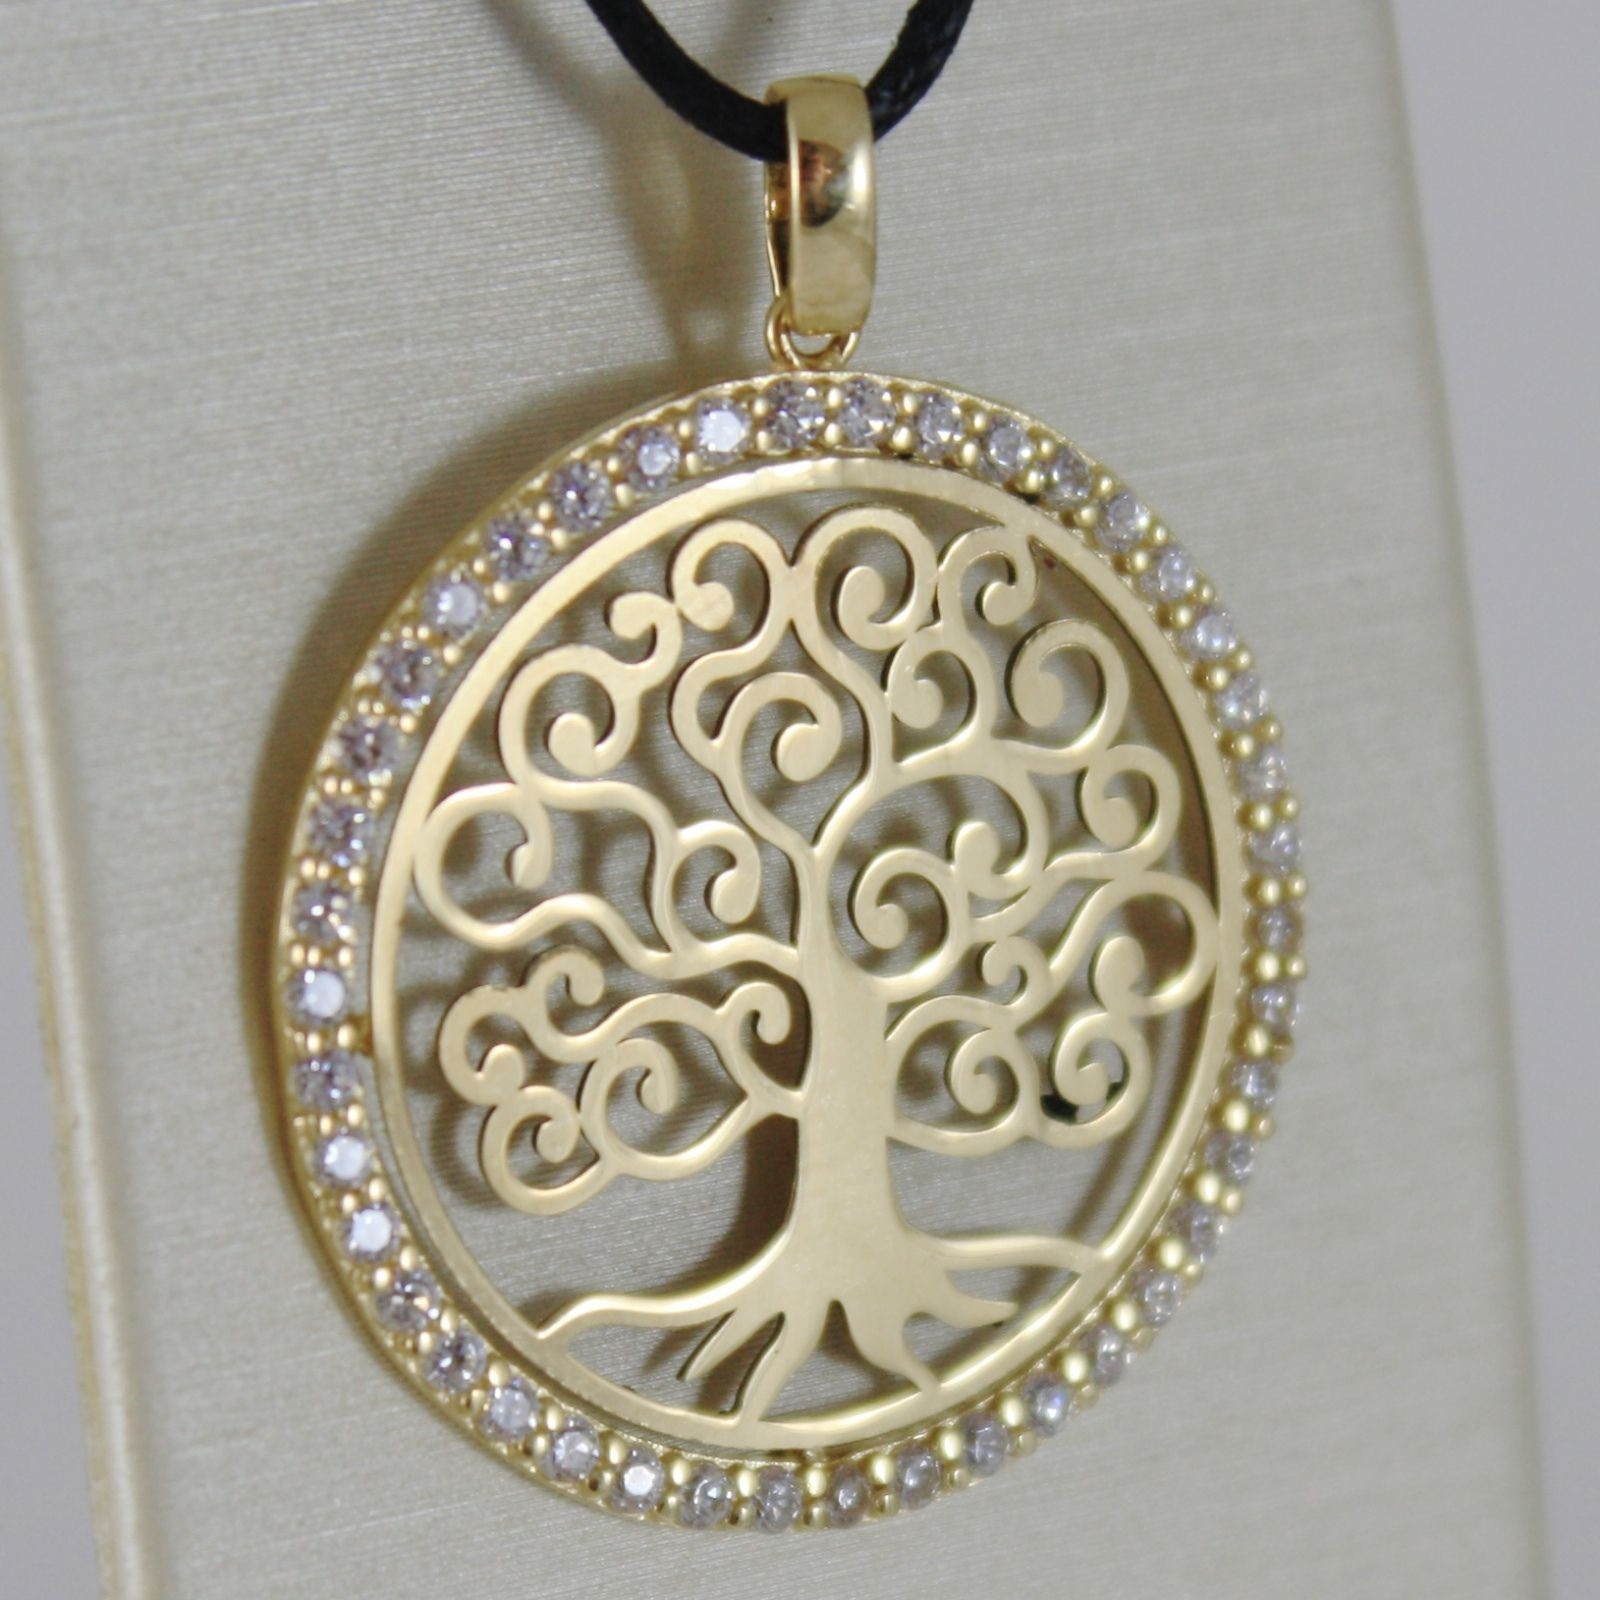 18K YELLOW GOLD TREE OF LIFE PENDANT 25 MM, 1 INCHES, ZIRCONIA, MADE IN ITALY